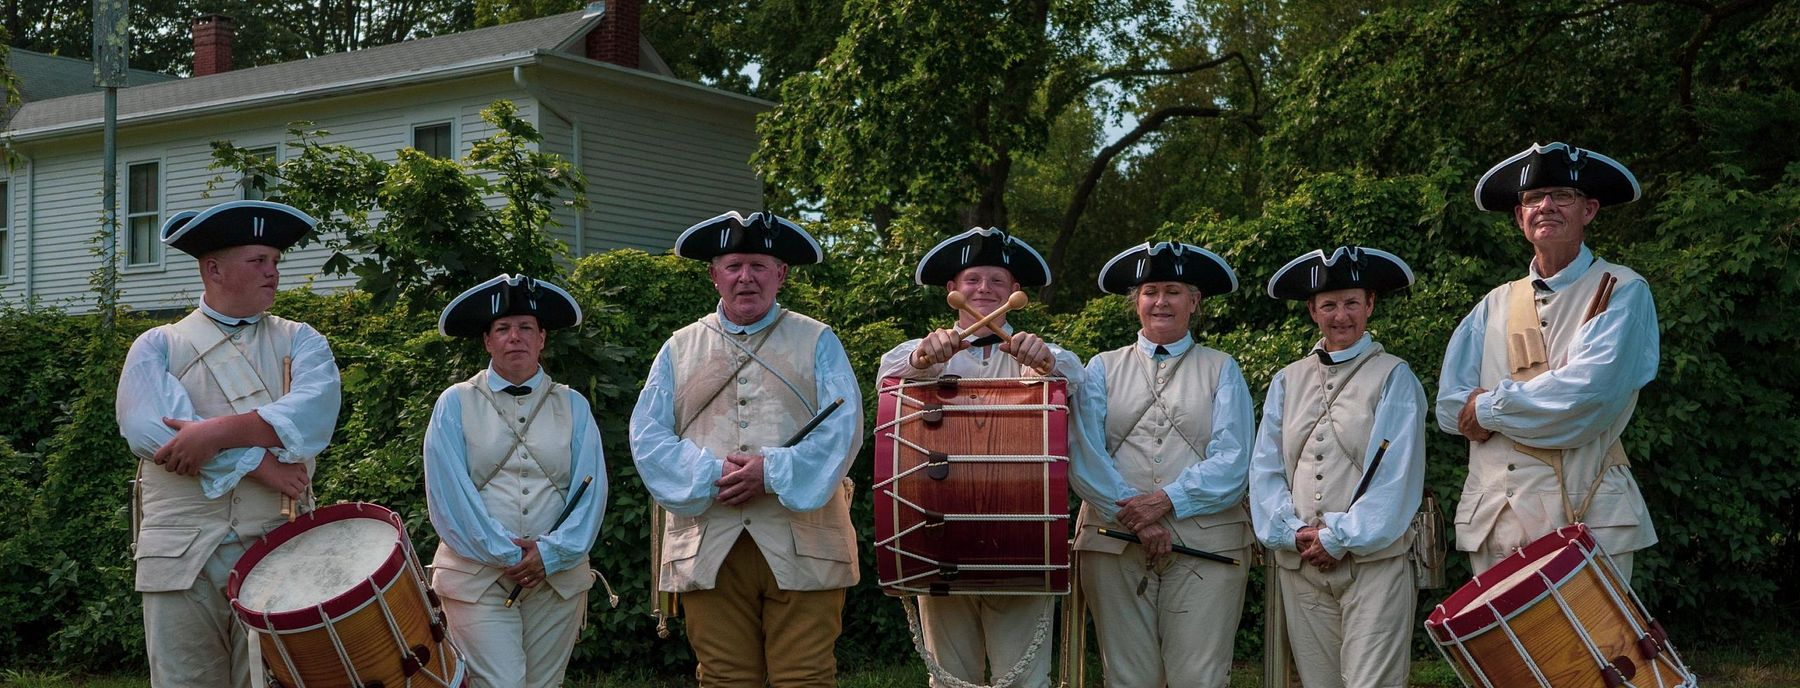 Members of Tryon Palace Fife and Drum line up